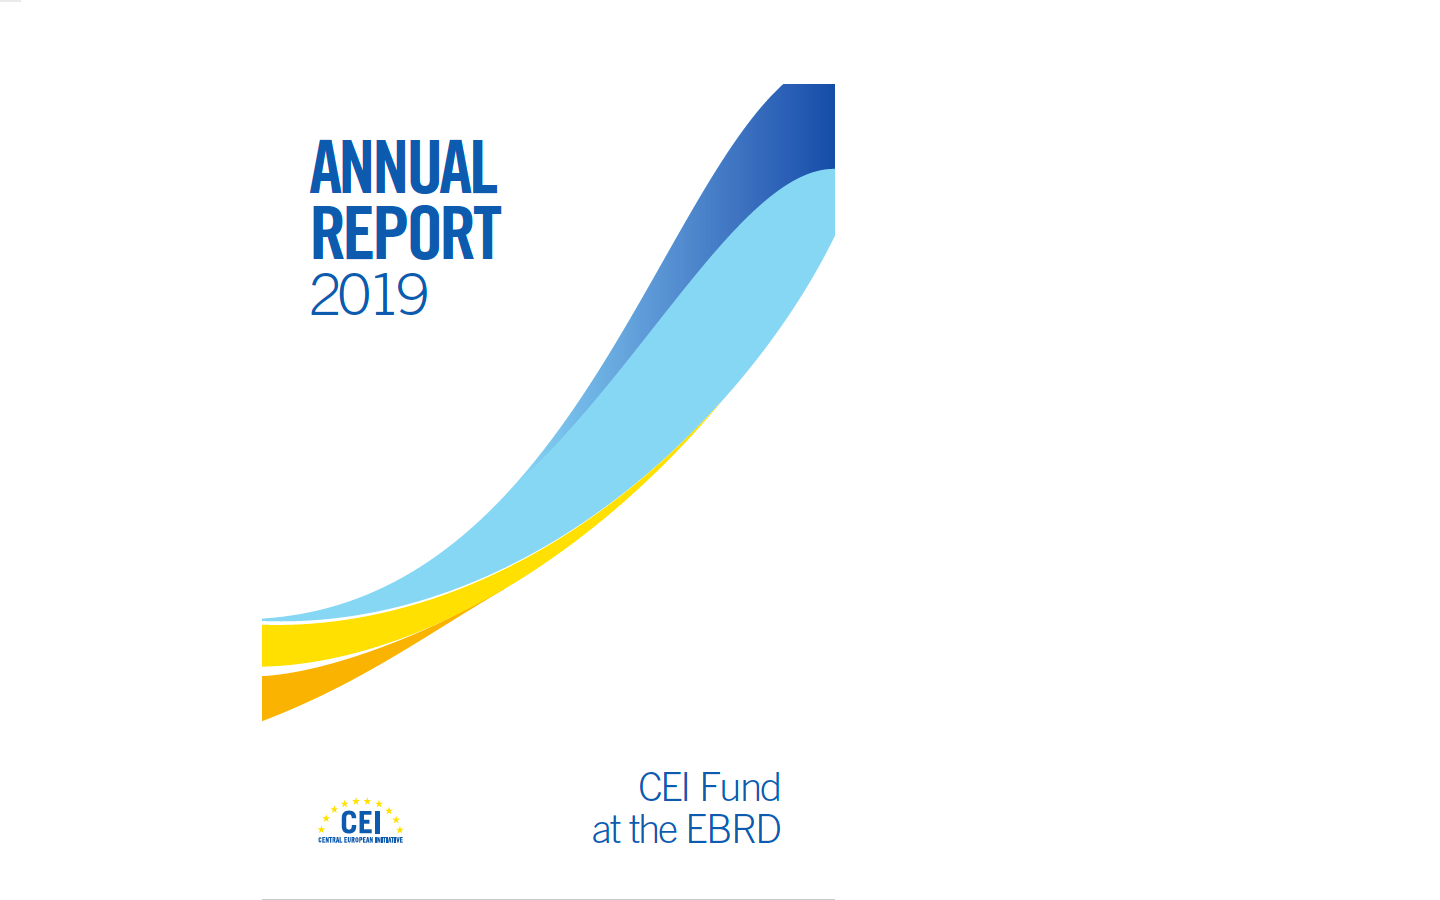 Annual Report 2019 of the CEI Fund at EBRD